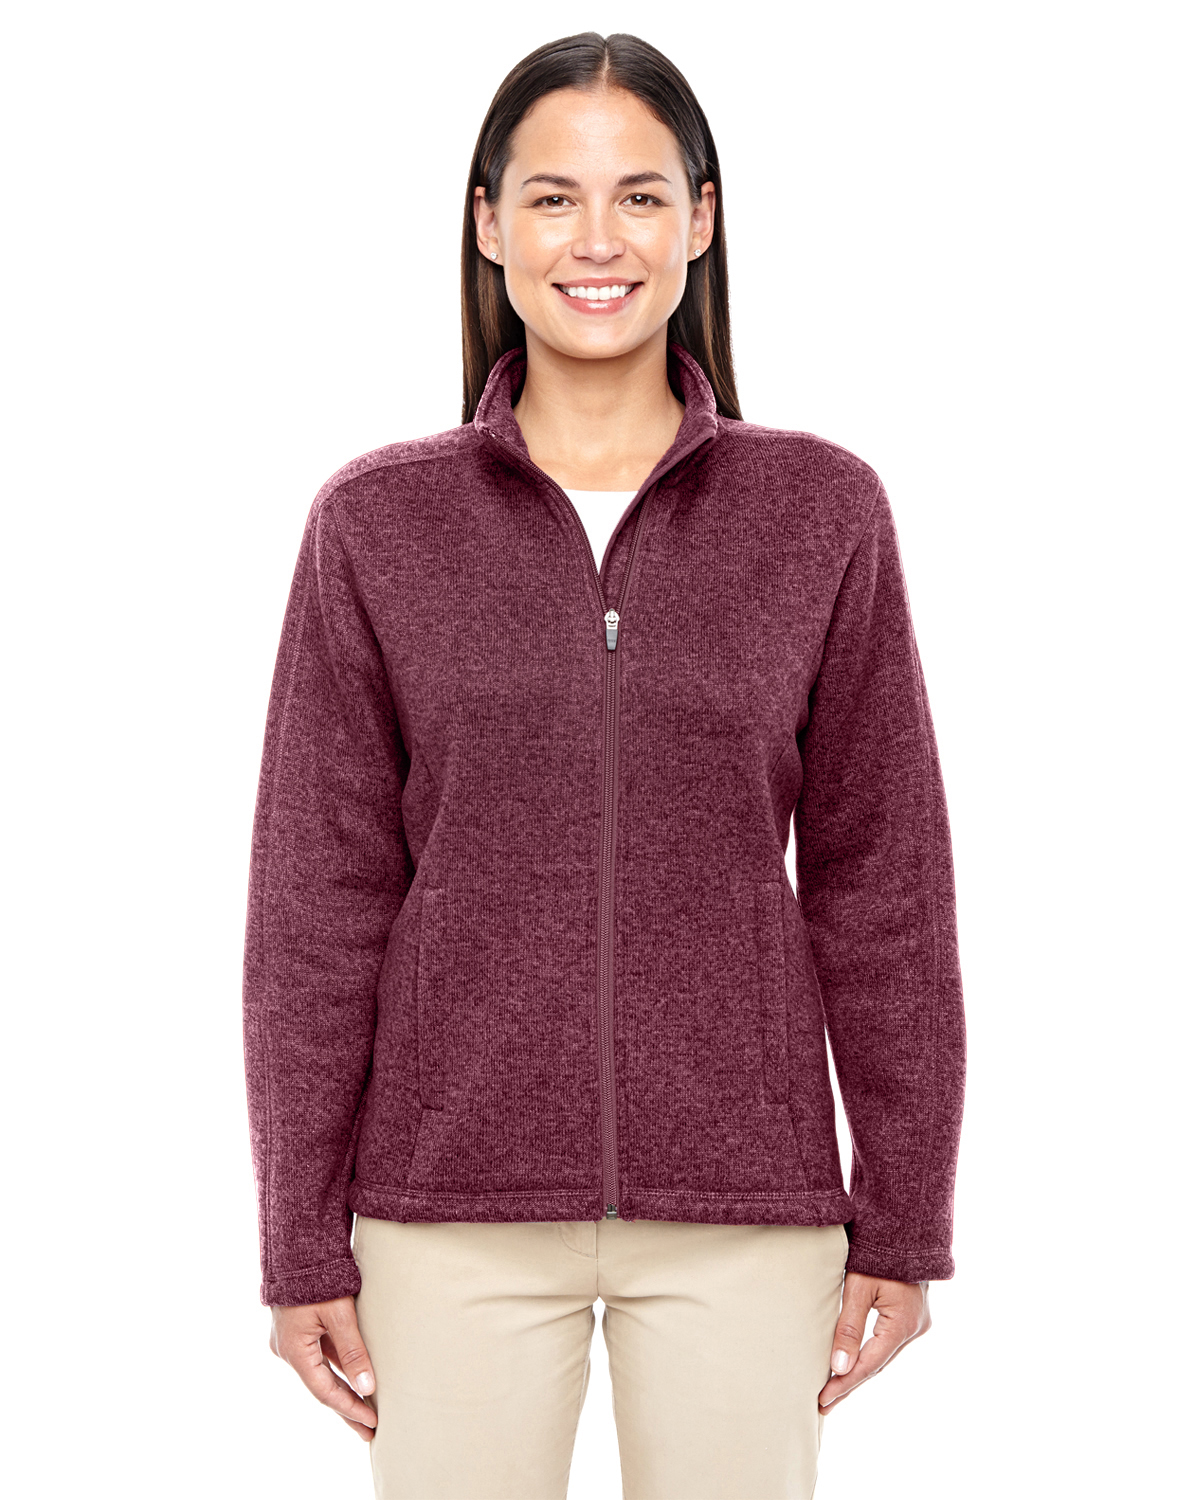 Devon & Jones - DG793W, Ladies' Bristol Full-Zip Sweater Fleece Jacket - Logo Masters International